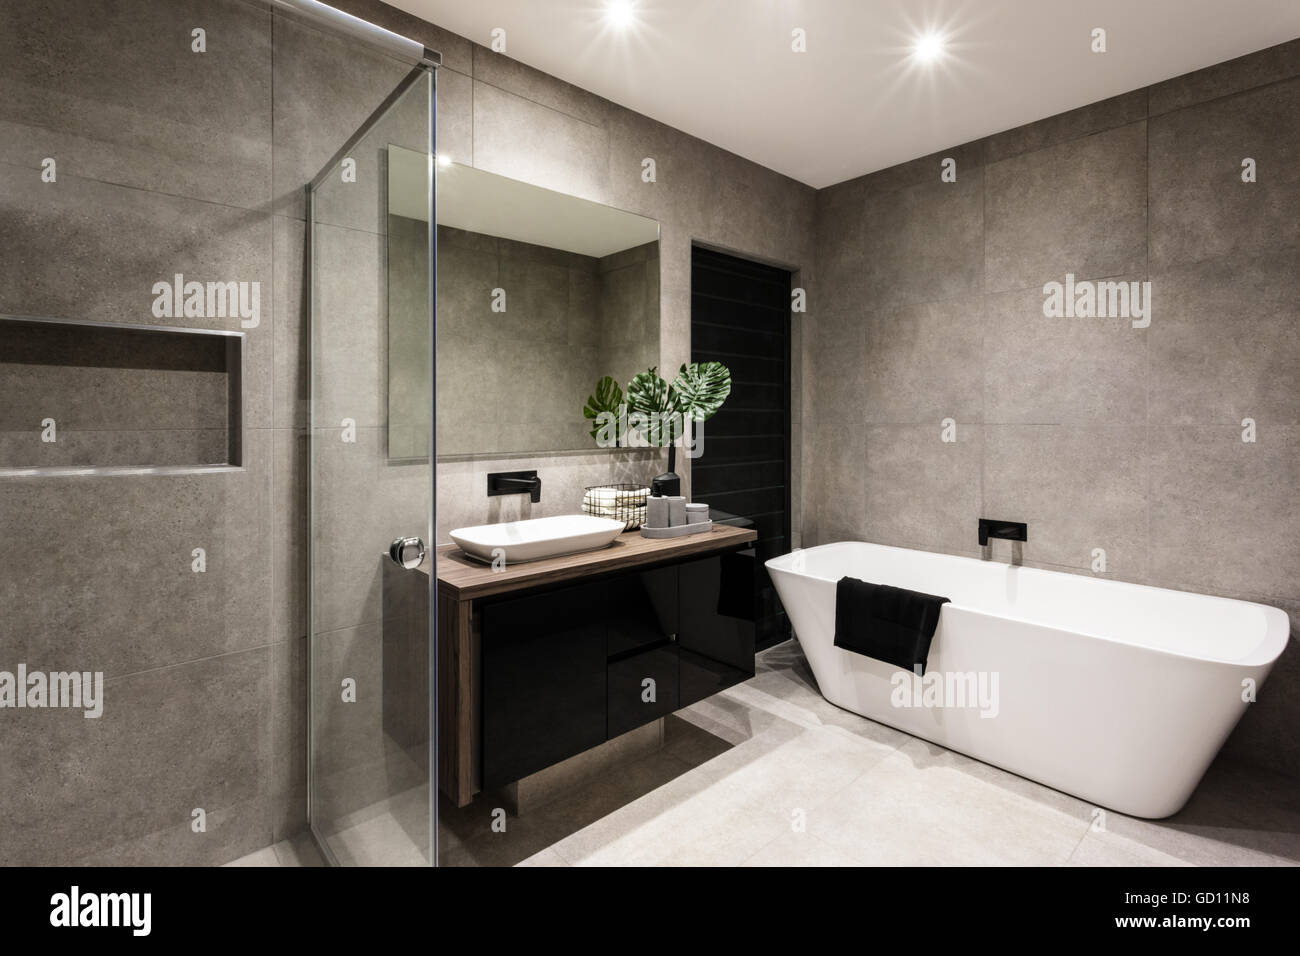 Modern Bathroom With A Shower Area And Bath Tub Including A Wall Mirror  Beside A Fancy Plant Near A Tap And Sink Over The Wooden